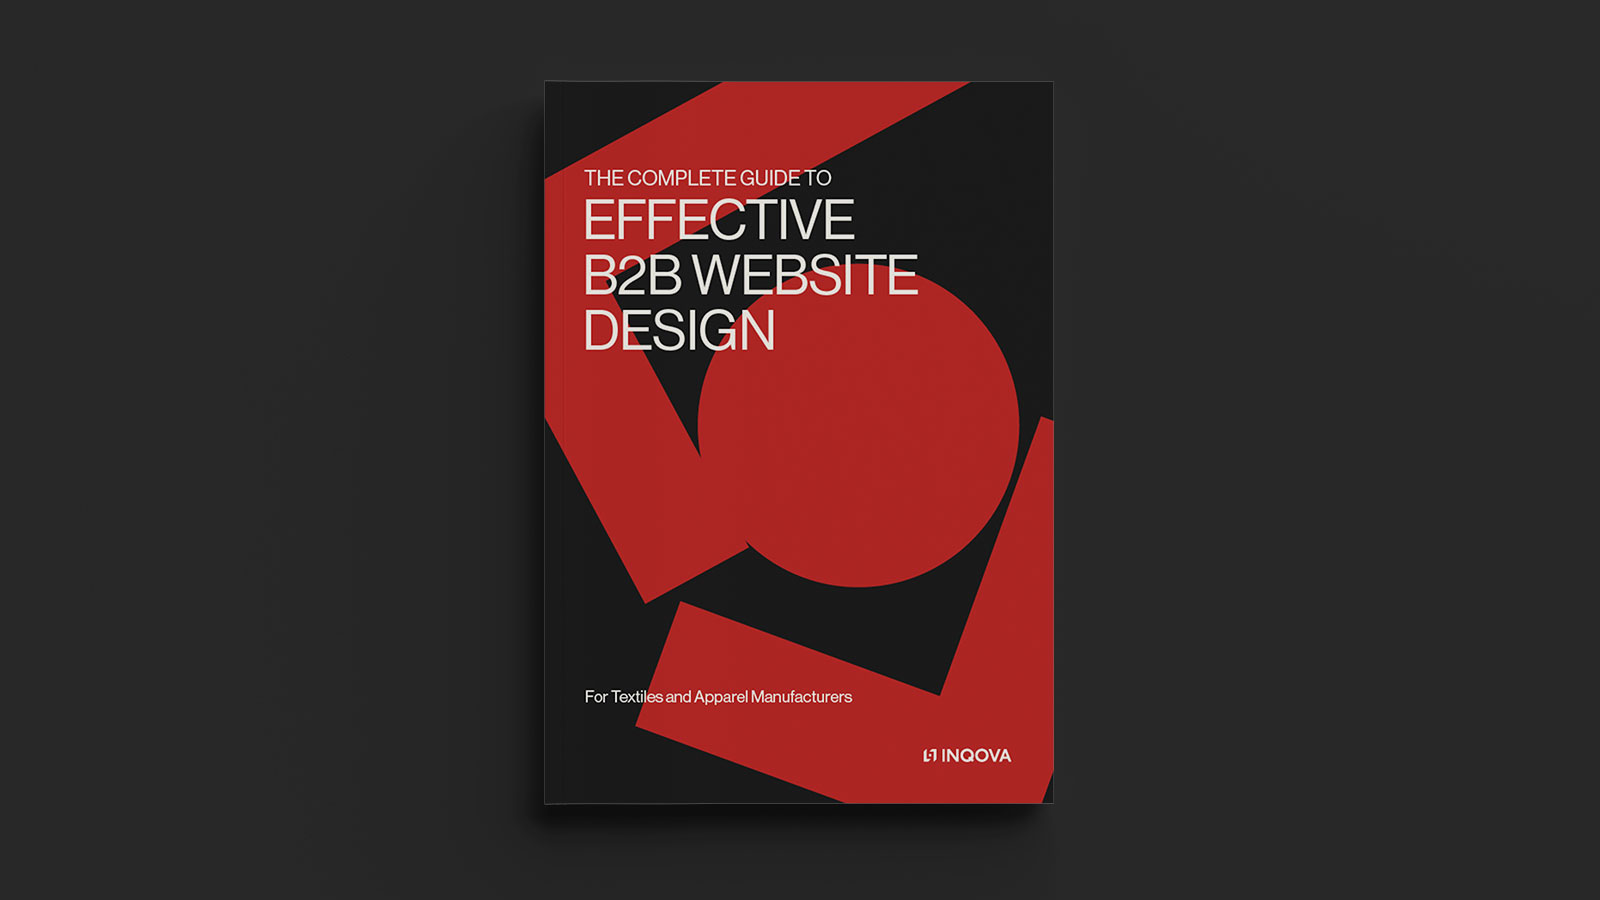 Effective B2B Website Guide Cover